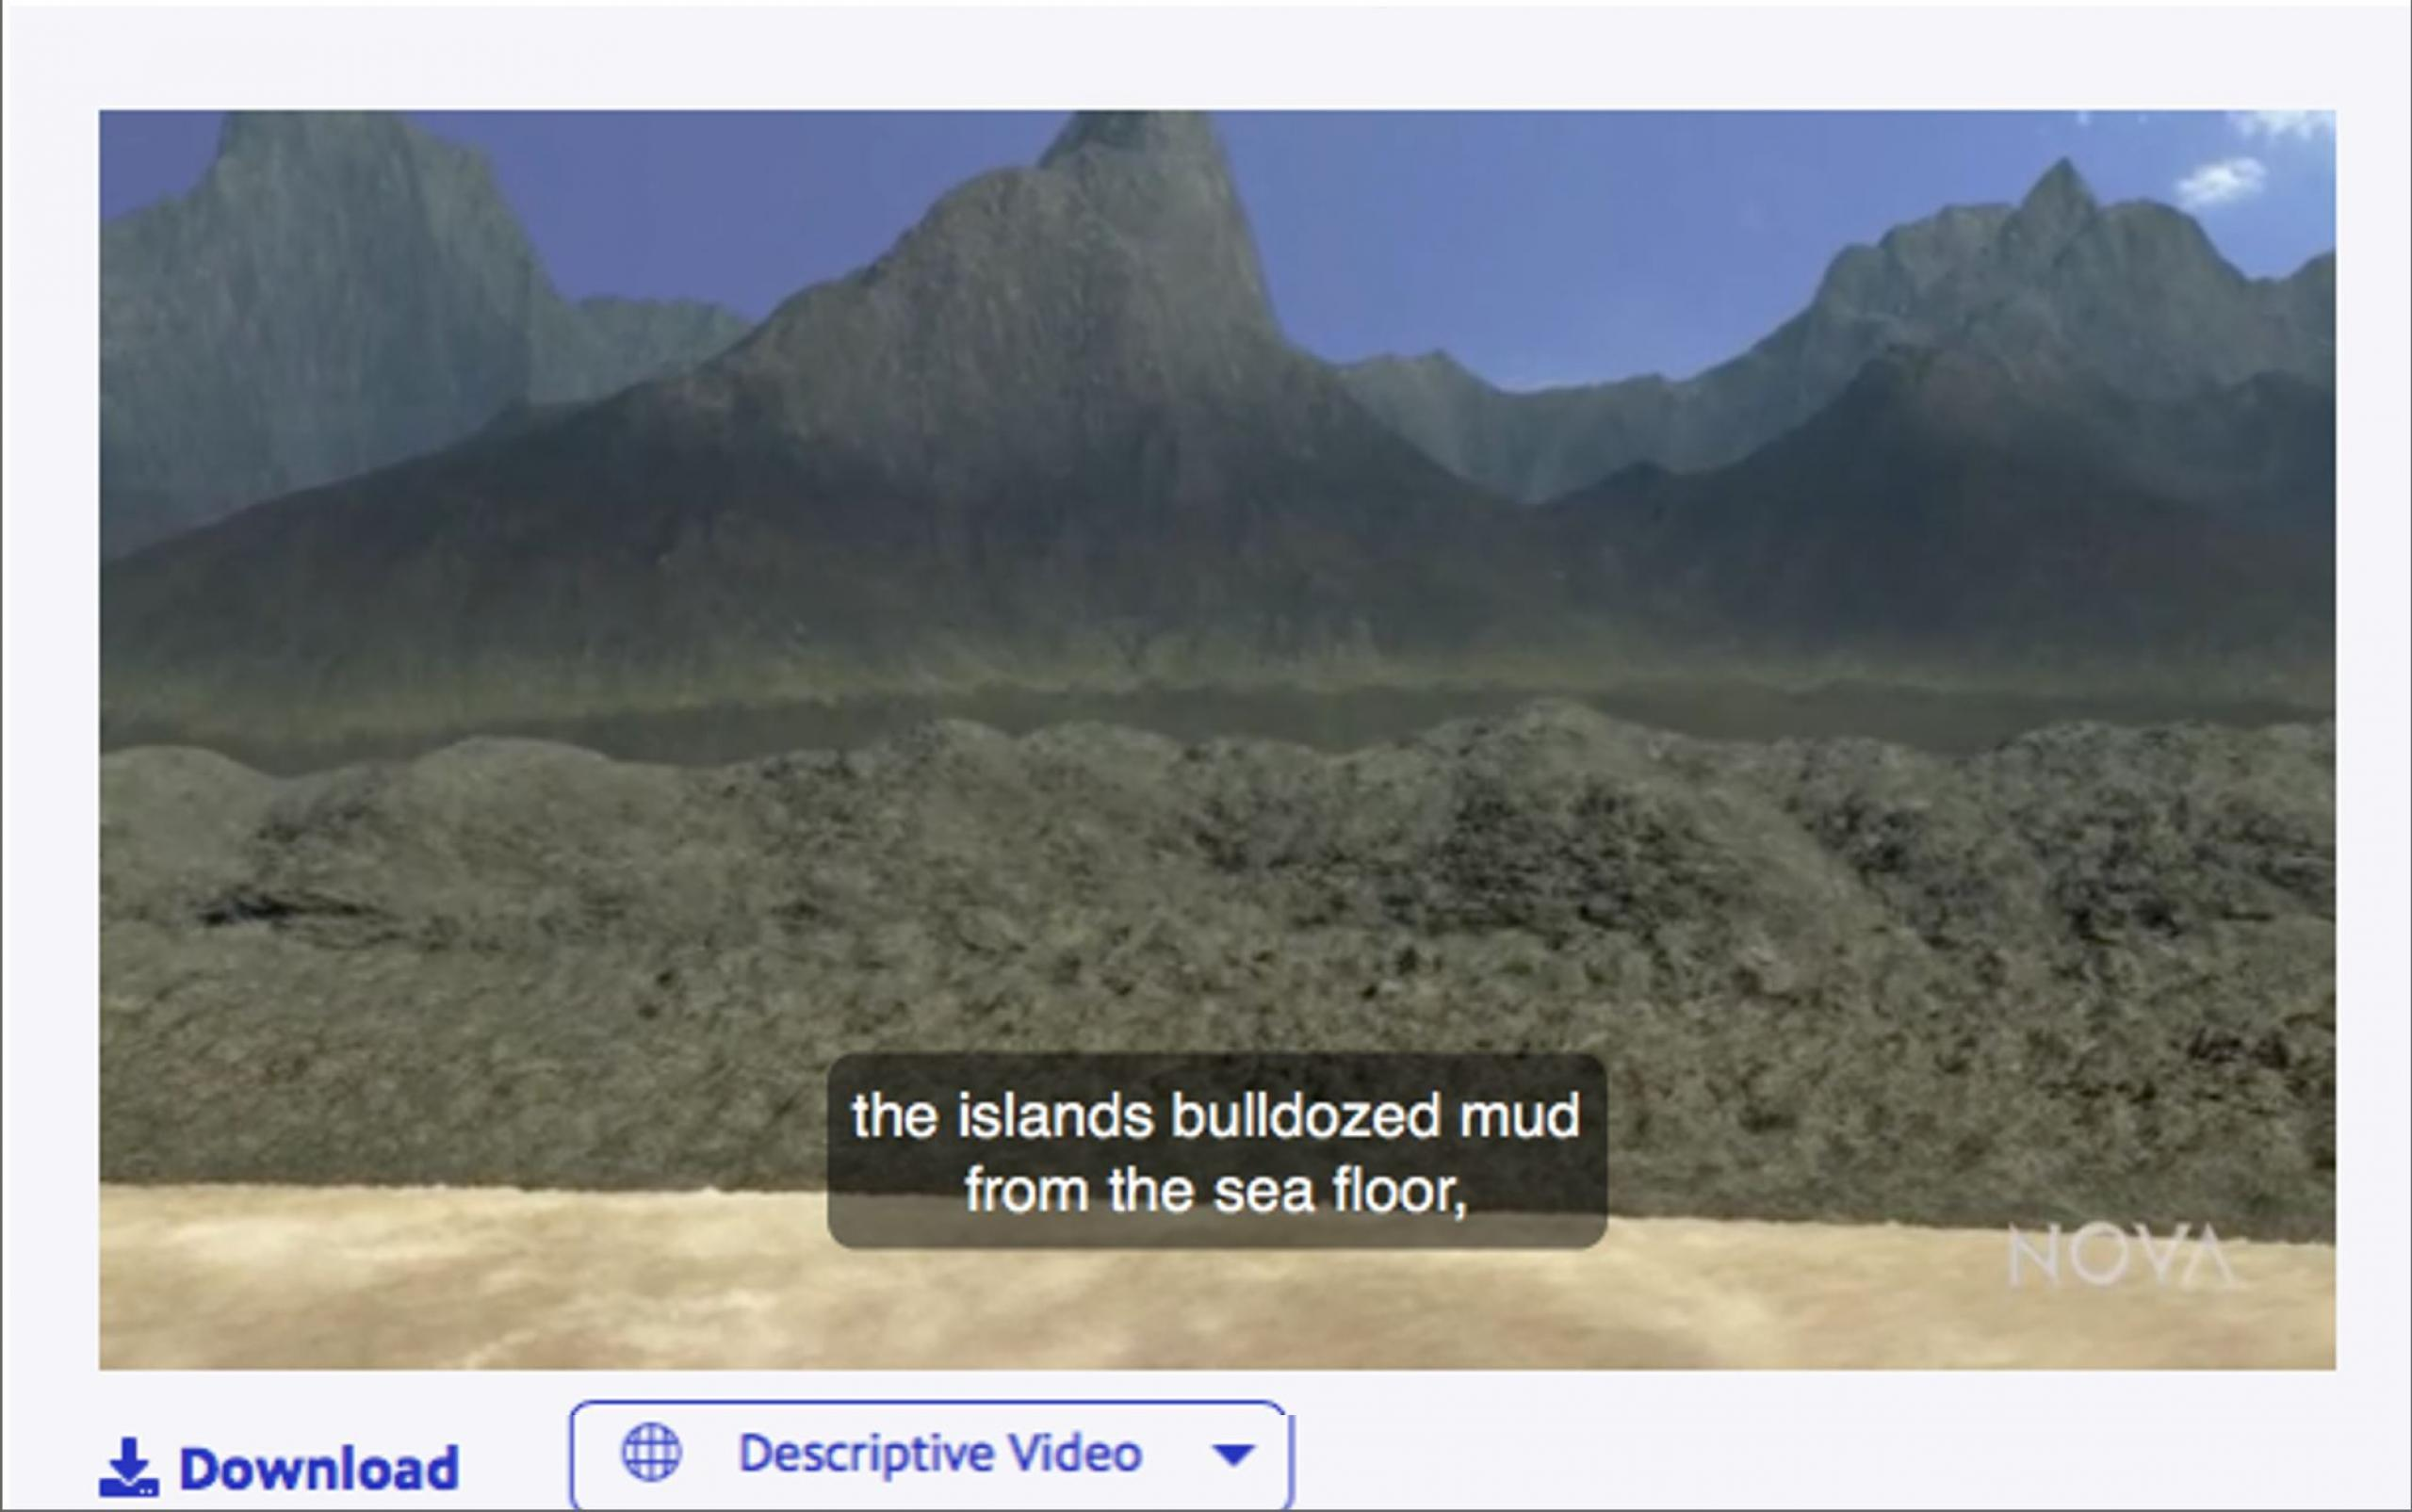 Screenshot from a Descriptive Video player depicting captions over a video.